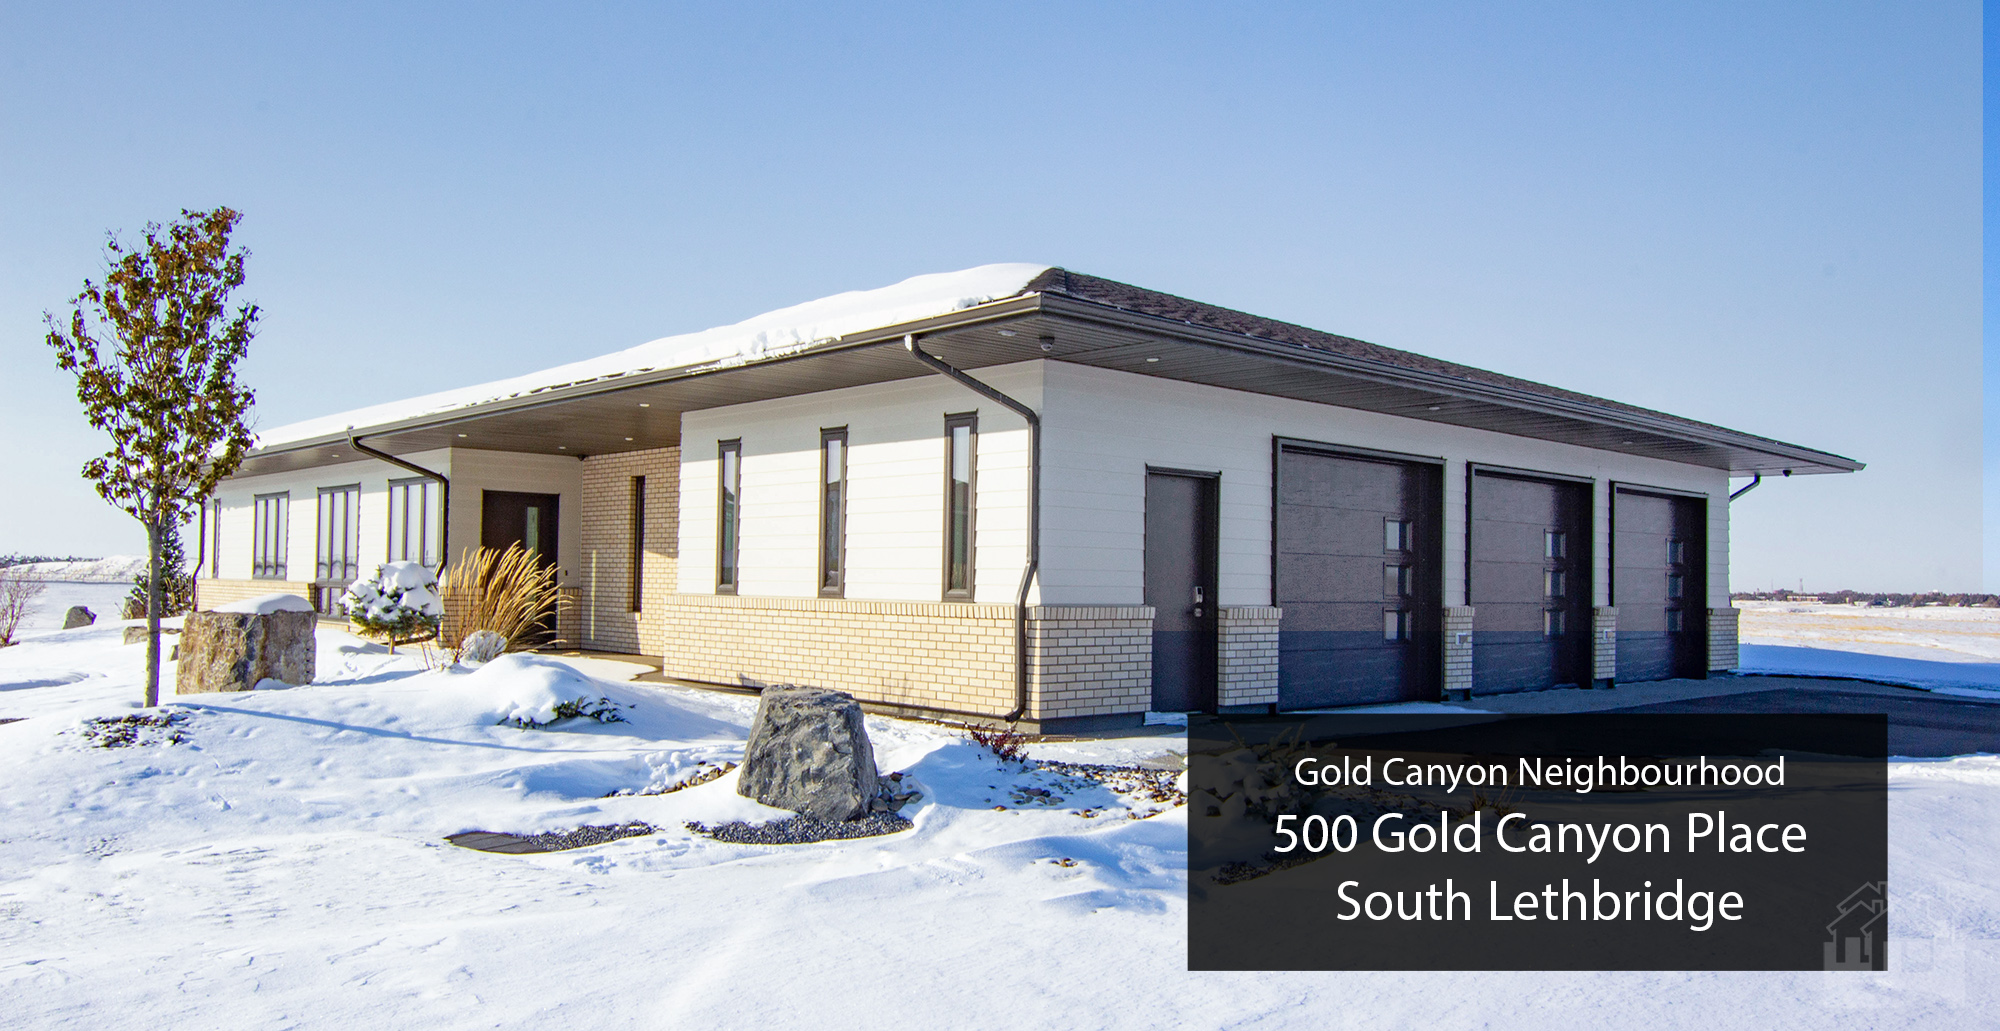 500 Gold Canyon Place South Lethbridge Cover image